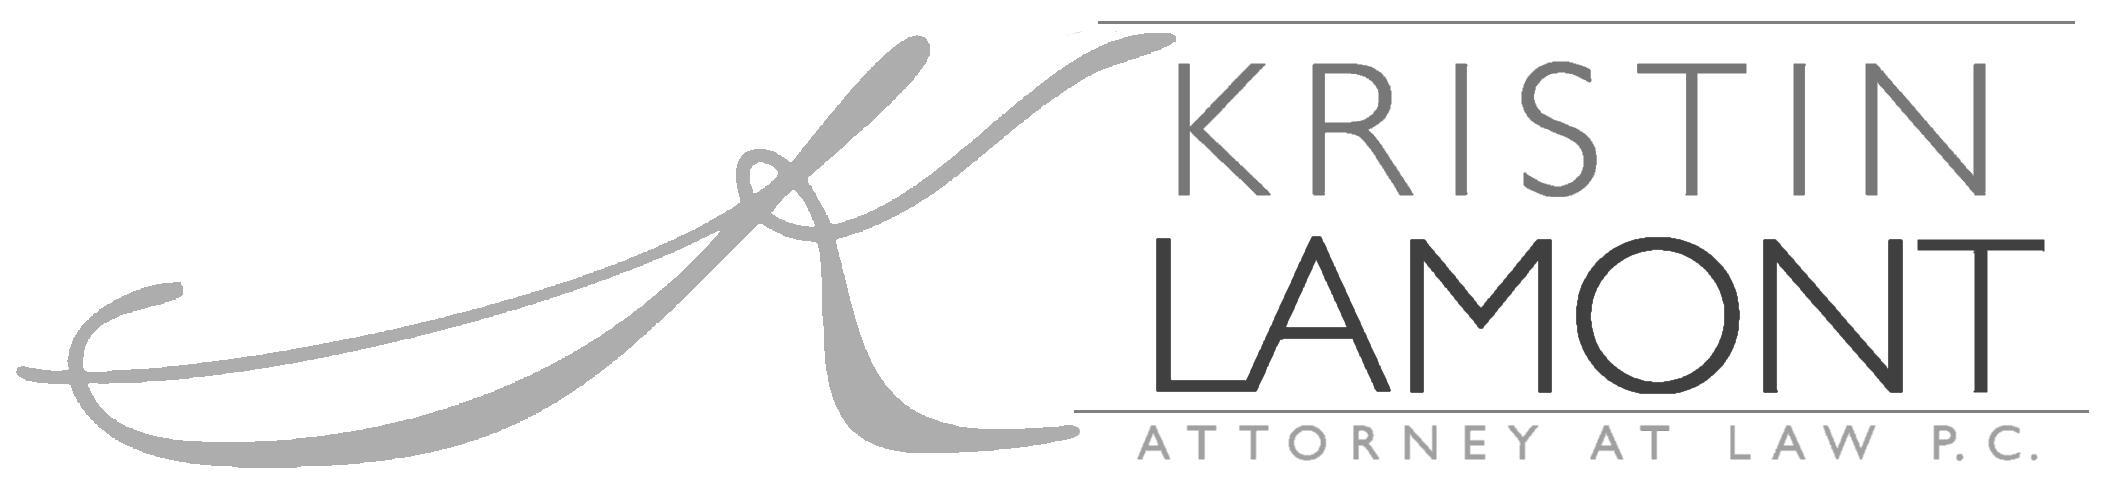 Lamont Law - Kristin LaMont, Attorney at Law, PC